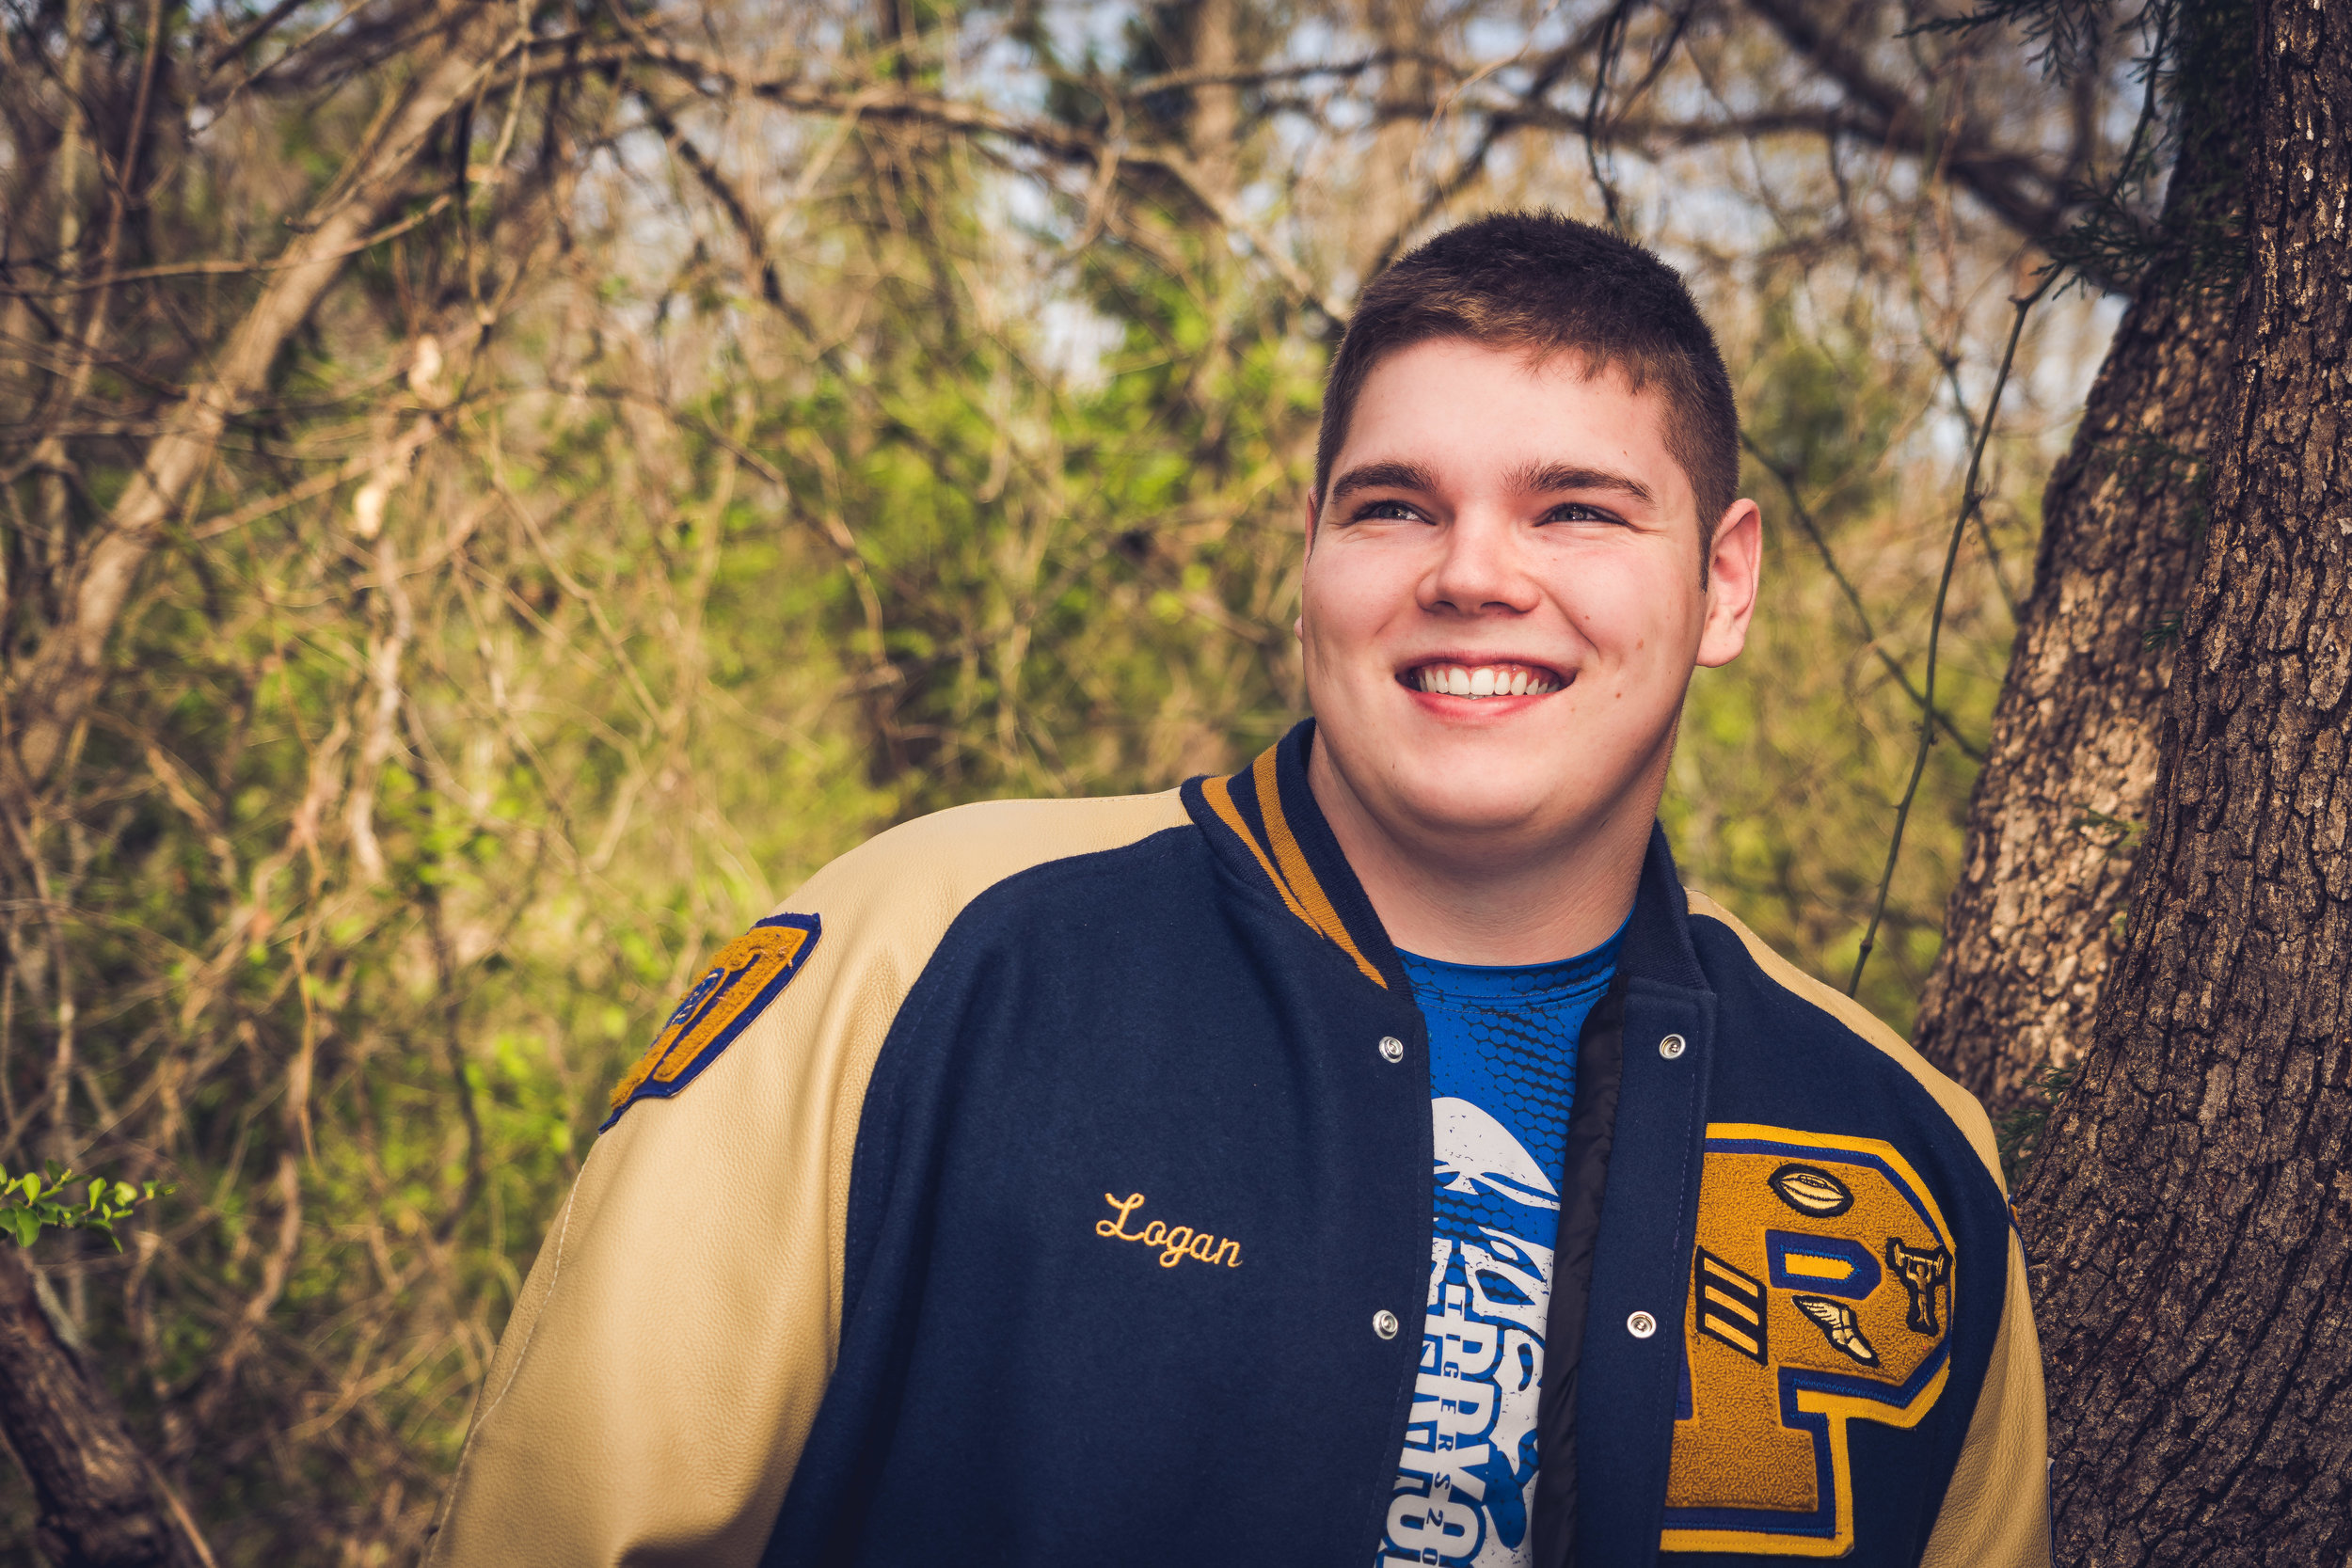 Logan Country Boy Senior Photos - Bound For Glory Productions-1.jpg